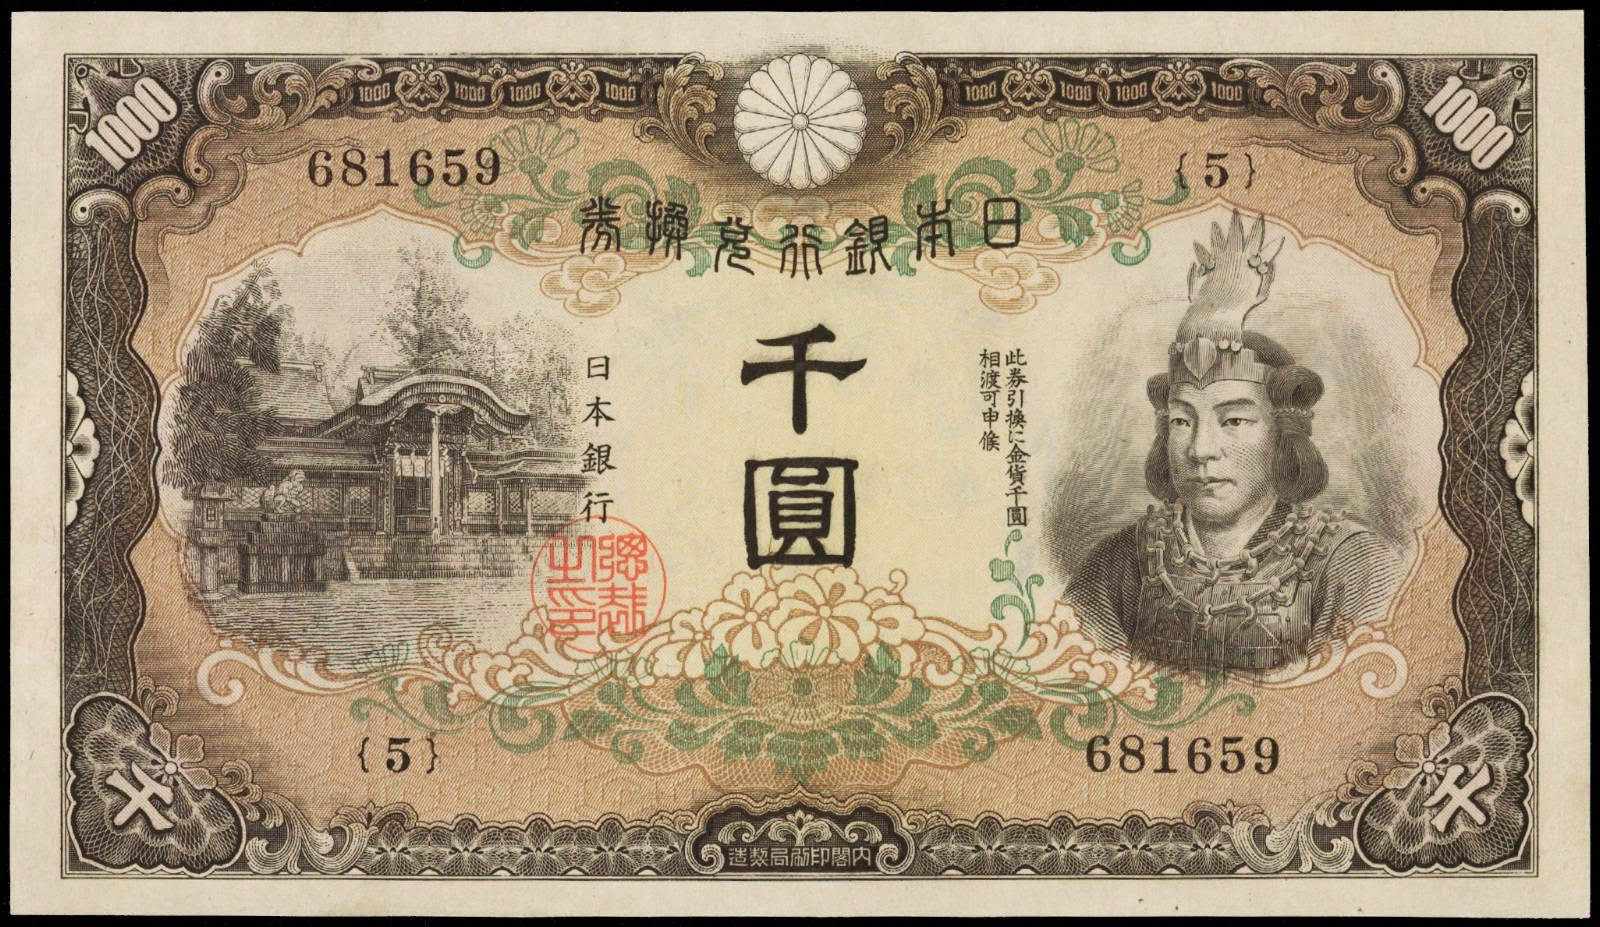 Japan money 1000 Yen banknote 1945 Yamato Takeru